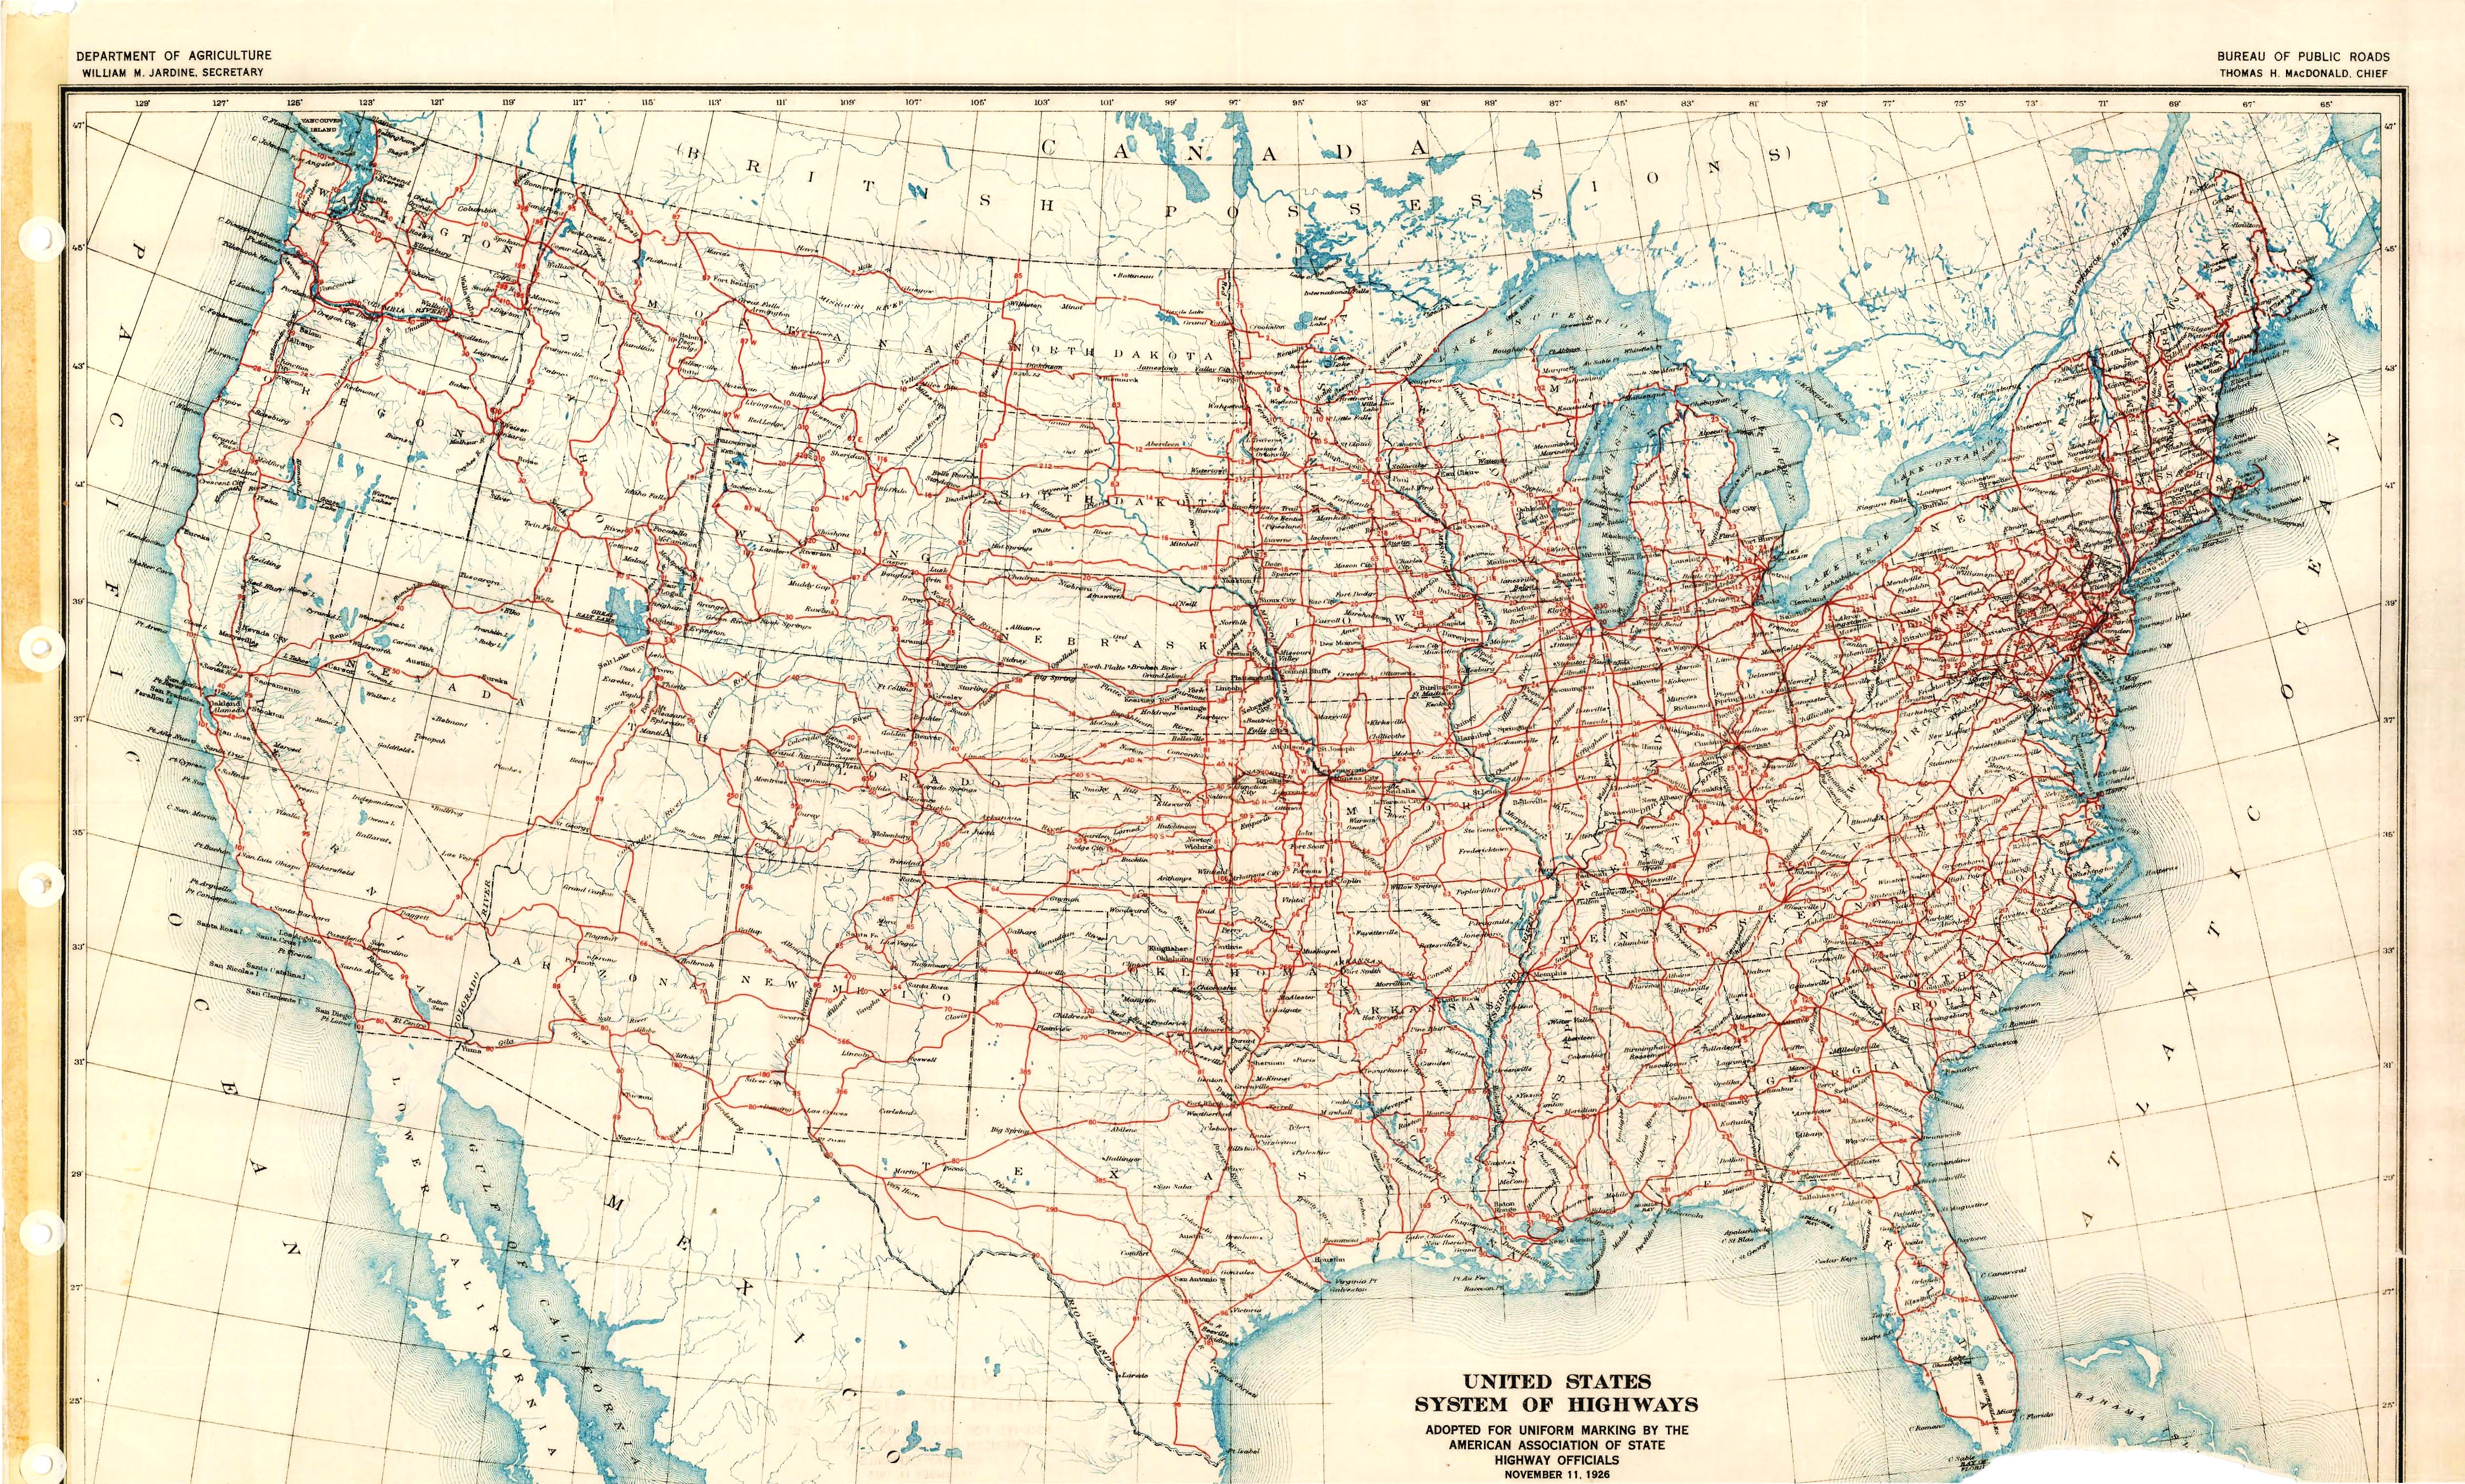 Original 1926 Map Right Click To View Full Size Version And To Save